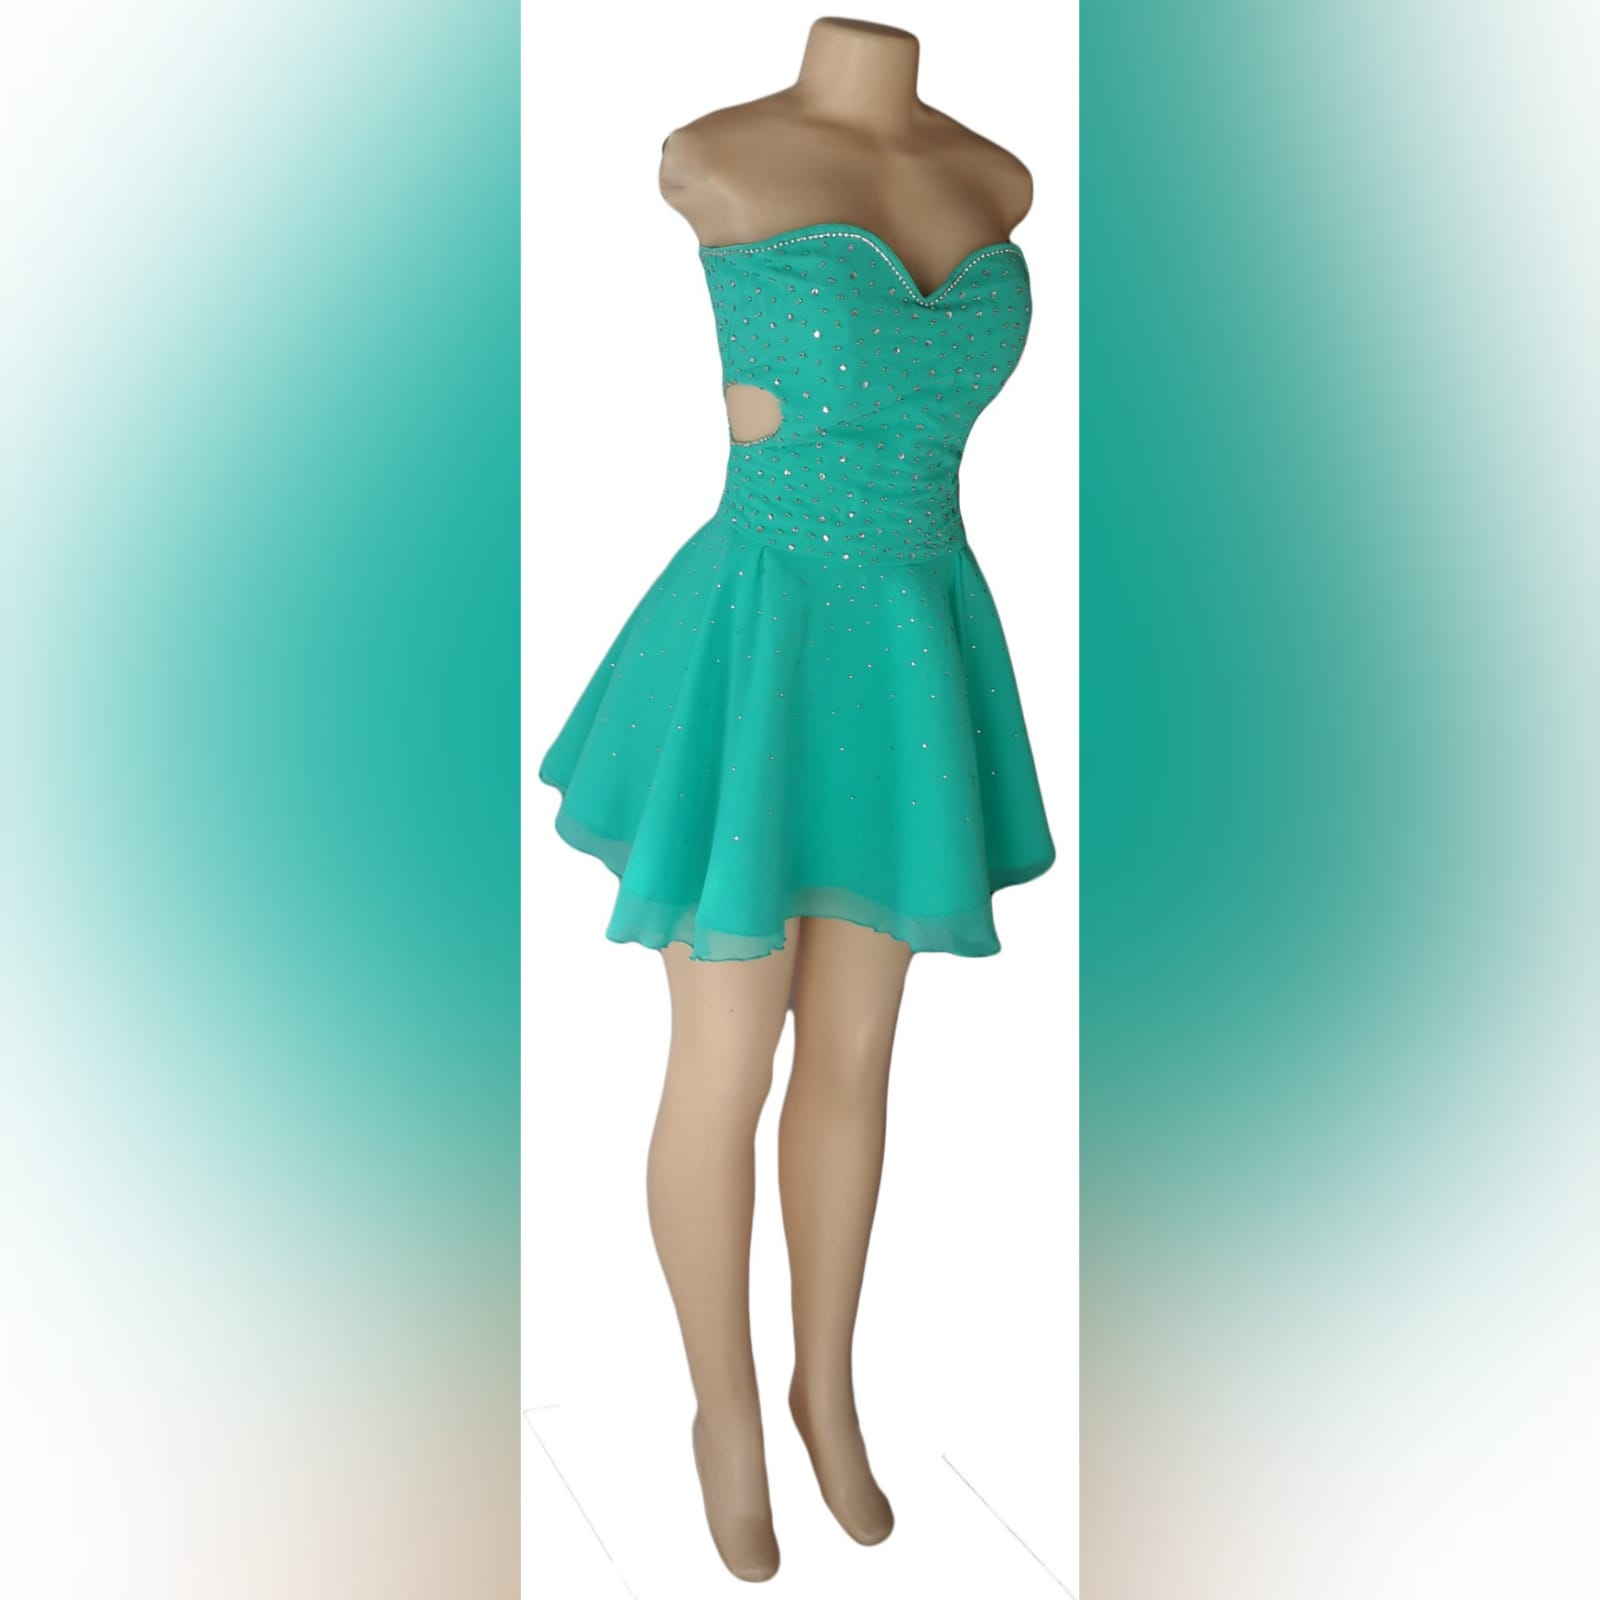 Turquoise 2 piece high low prom dress 3 turquoise 2 piece high low prom dress. Boobtube short dress with a sweetheart neckline and side tummy opening, lace-up back with bodice beaded in silver. With a detachable chiffon train creating a high low effect, with a wide silver belt.